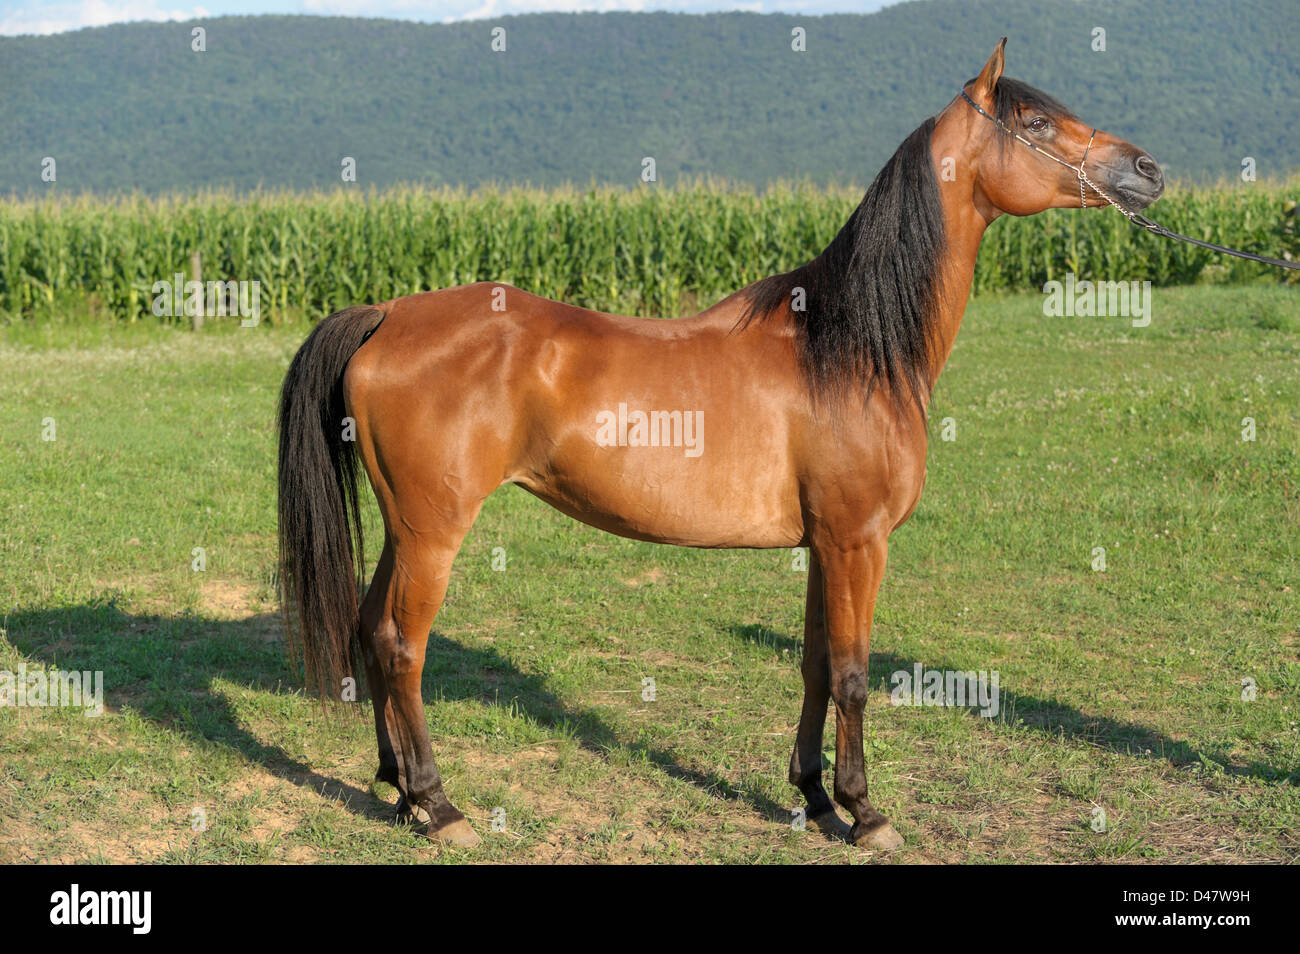 Bay horse standing in full body, side view, profile of a brown purebred Arabian mare, in a green, grassy field outdoors, - Stock Image